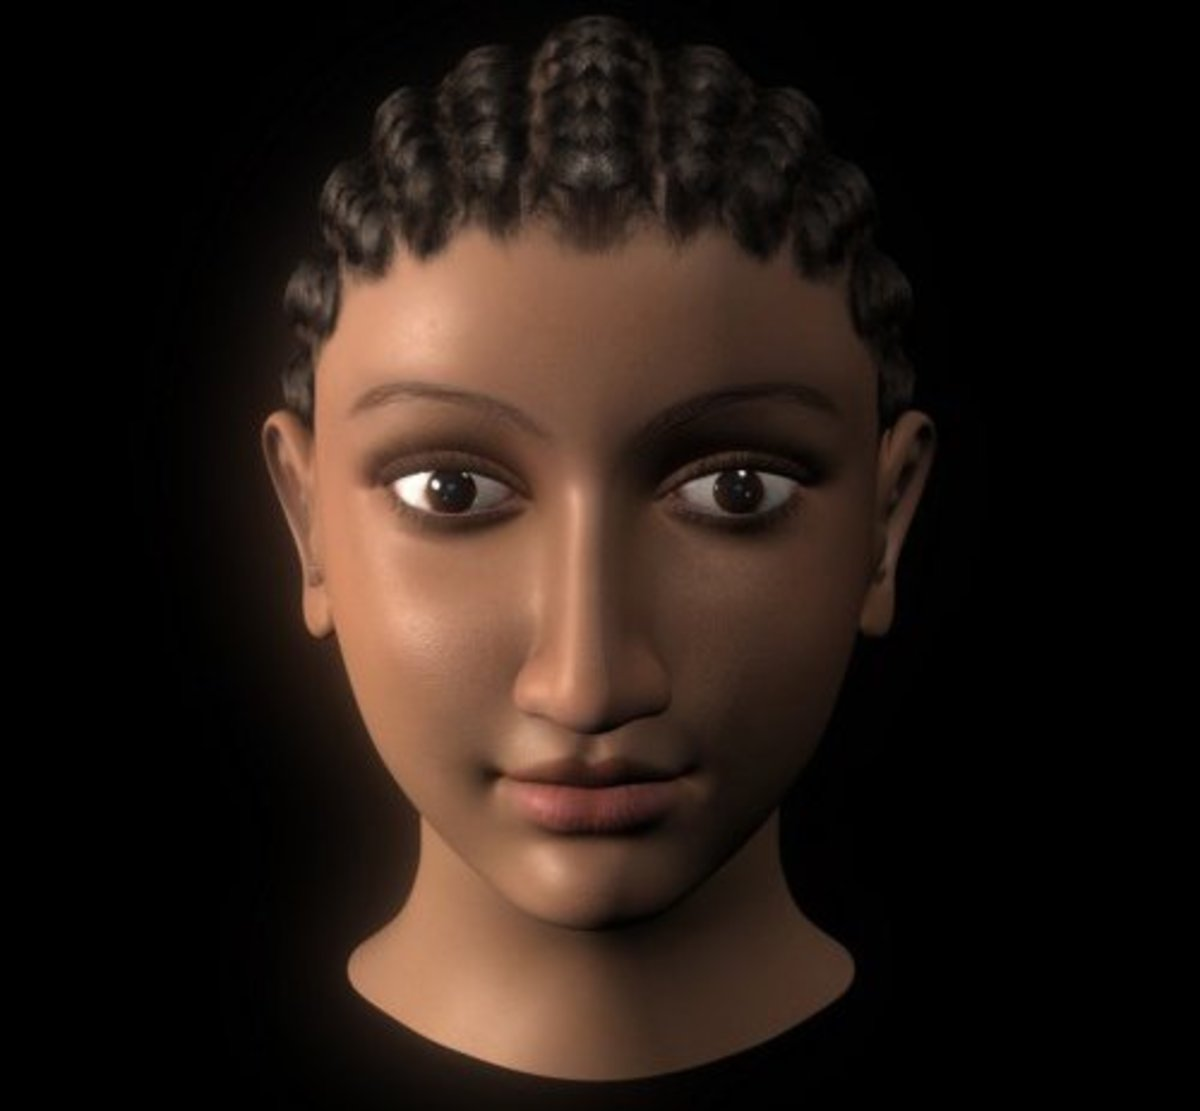 This is a rough estimation of how Cleopatra looked from the coin, artifact and wall depiction of her. She was of African ancestry.